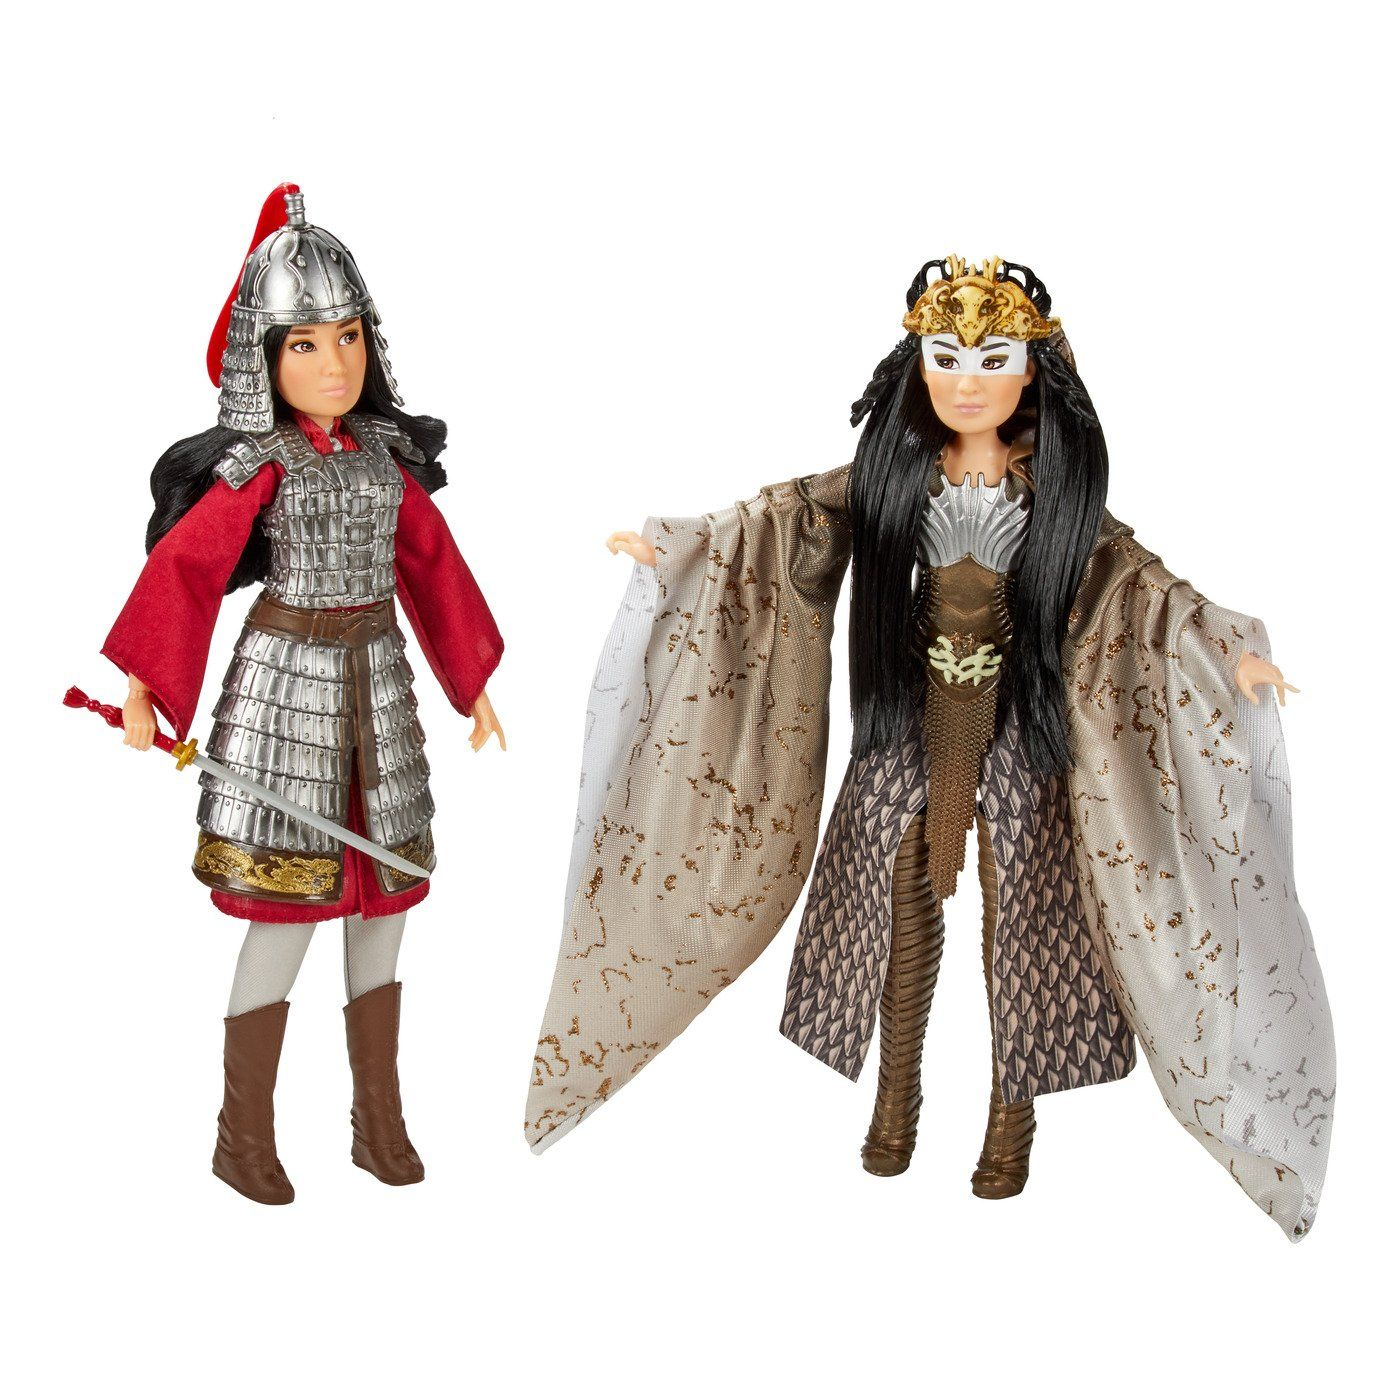 Buy Disney Princess Mulan And Xianniang Dolls With Accessories Dolls Argos In 2020 Mulan Movie Mulan Stunning Gowns